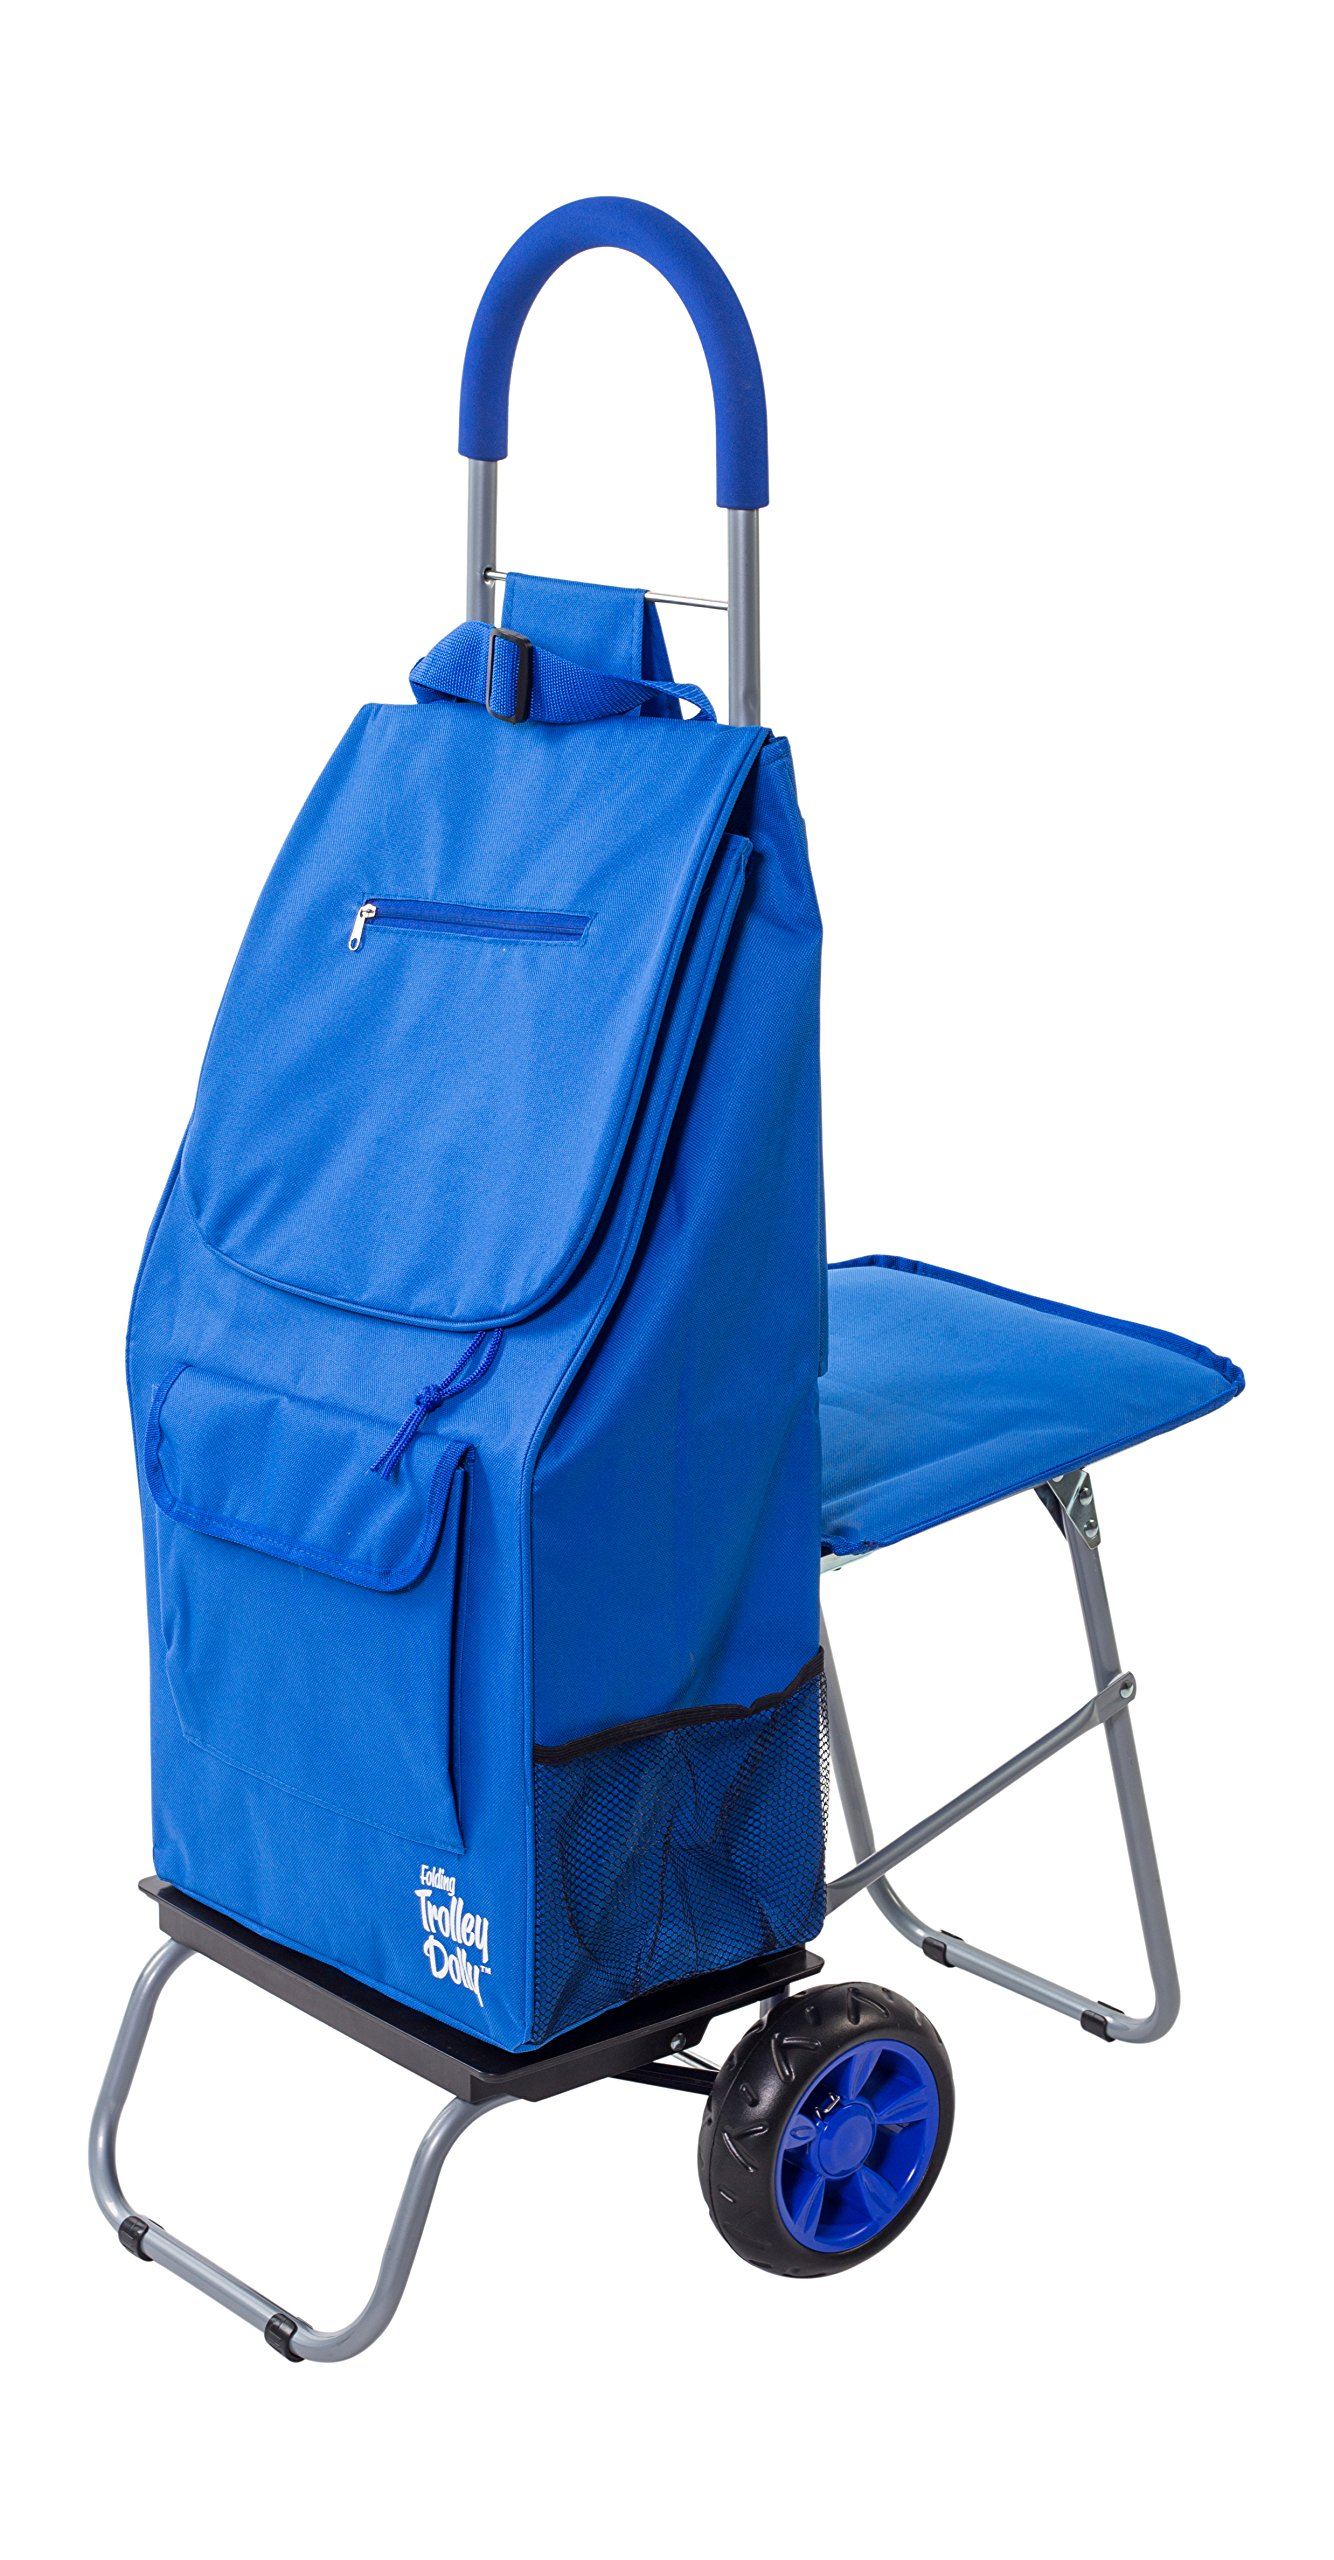 dbest products Trolley Dolly with Seat, Blue Shopping Grocery Foldable Cart Tailgate by dbest products